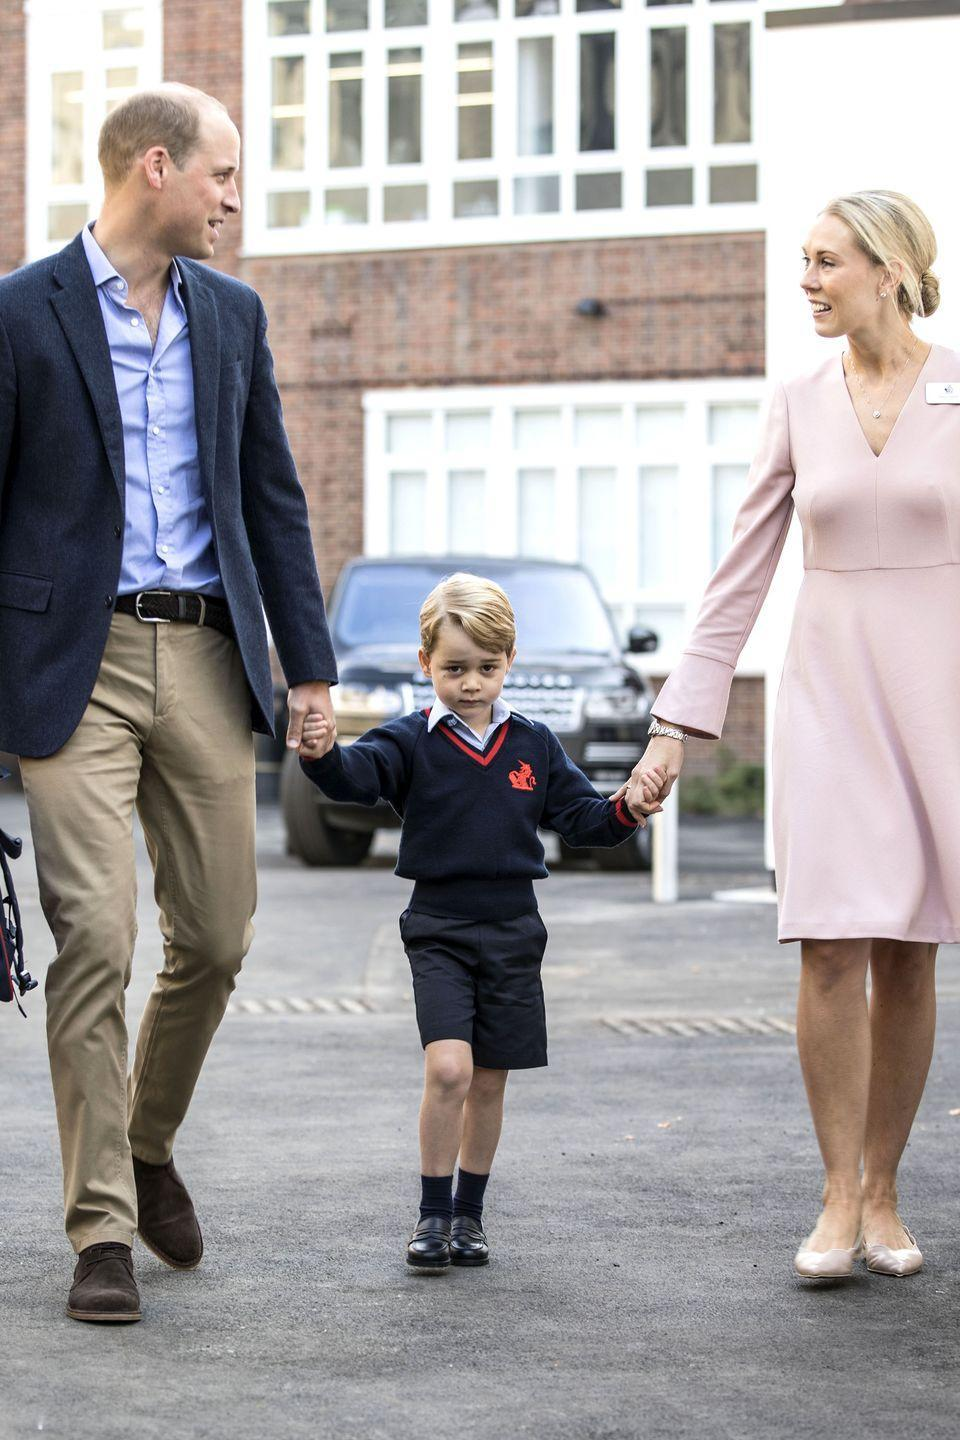 <p>Prince William walks Prince George into his new school at Thomas's Battersea, who seems to have gotten a case of the 'first day' nerves. </p>